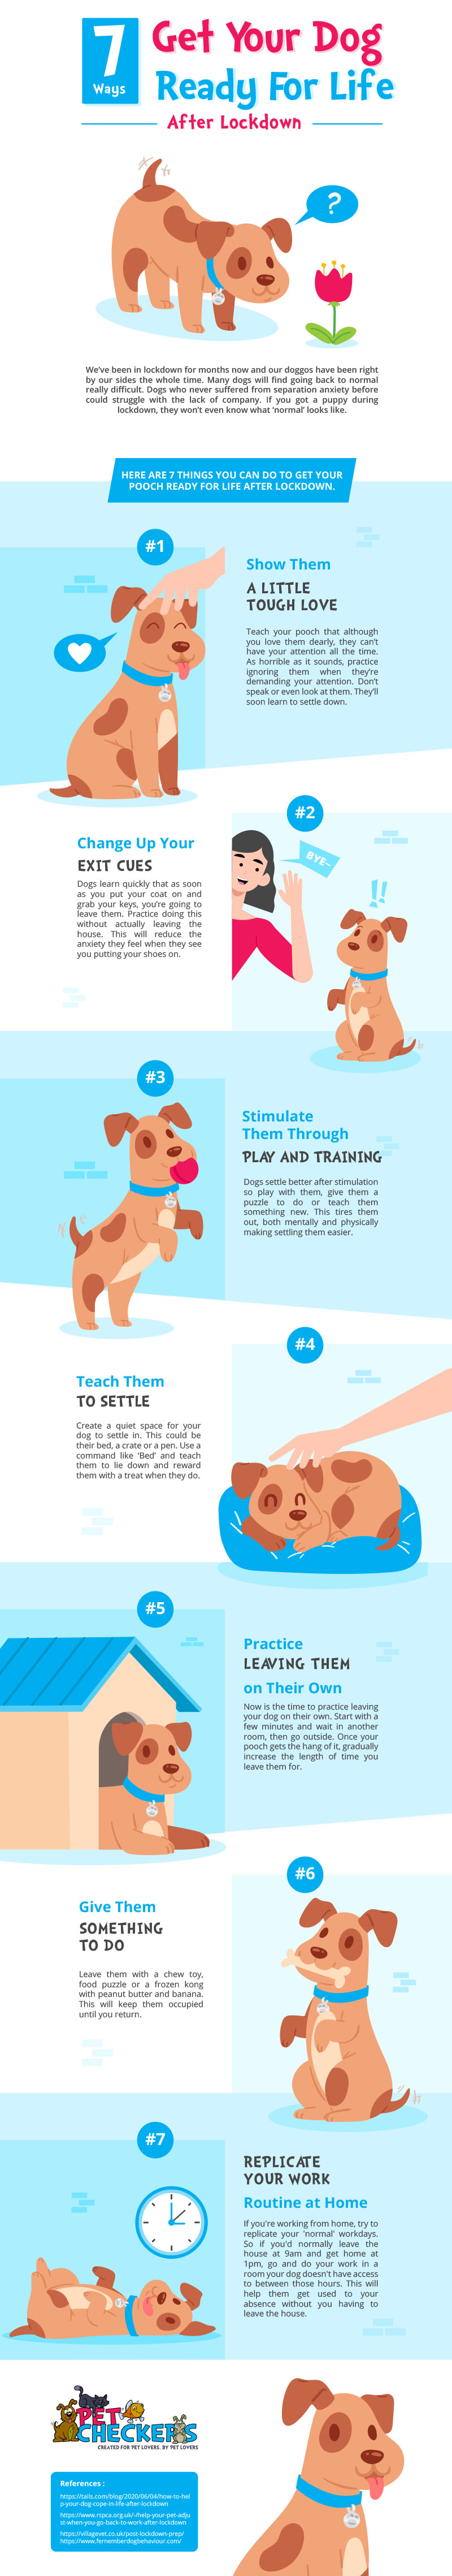 7 ways to get your dog ready for life after lockdown